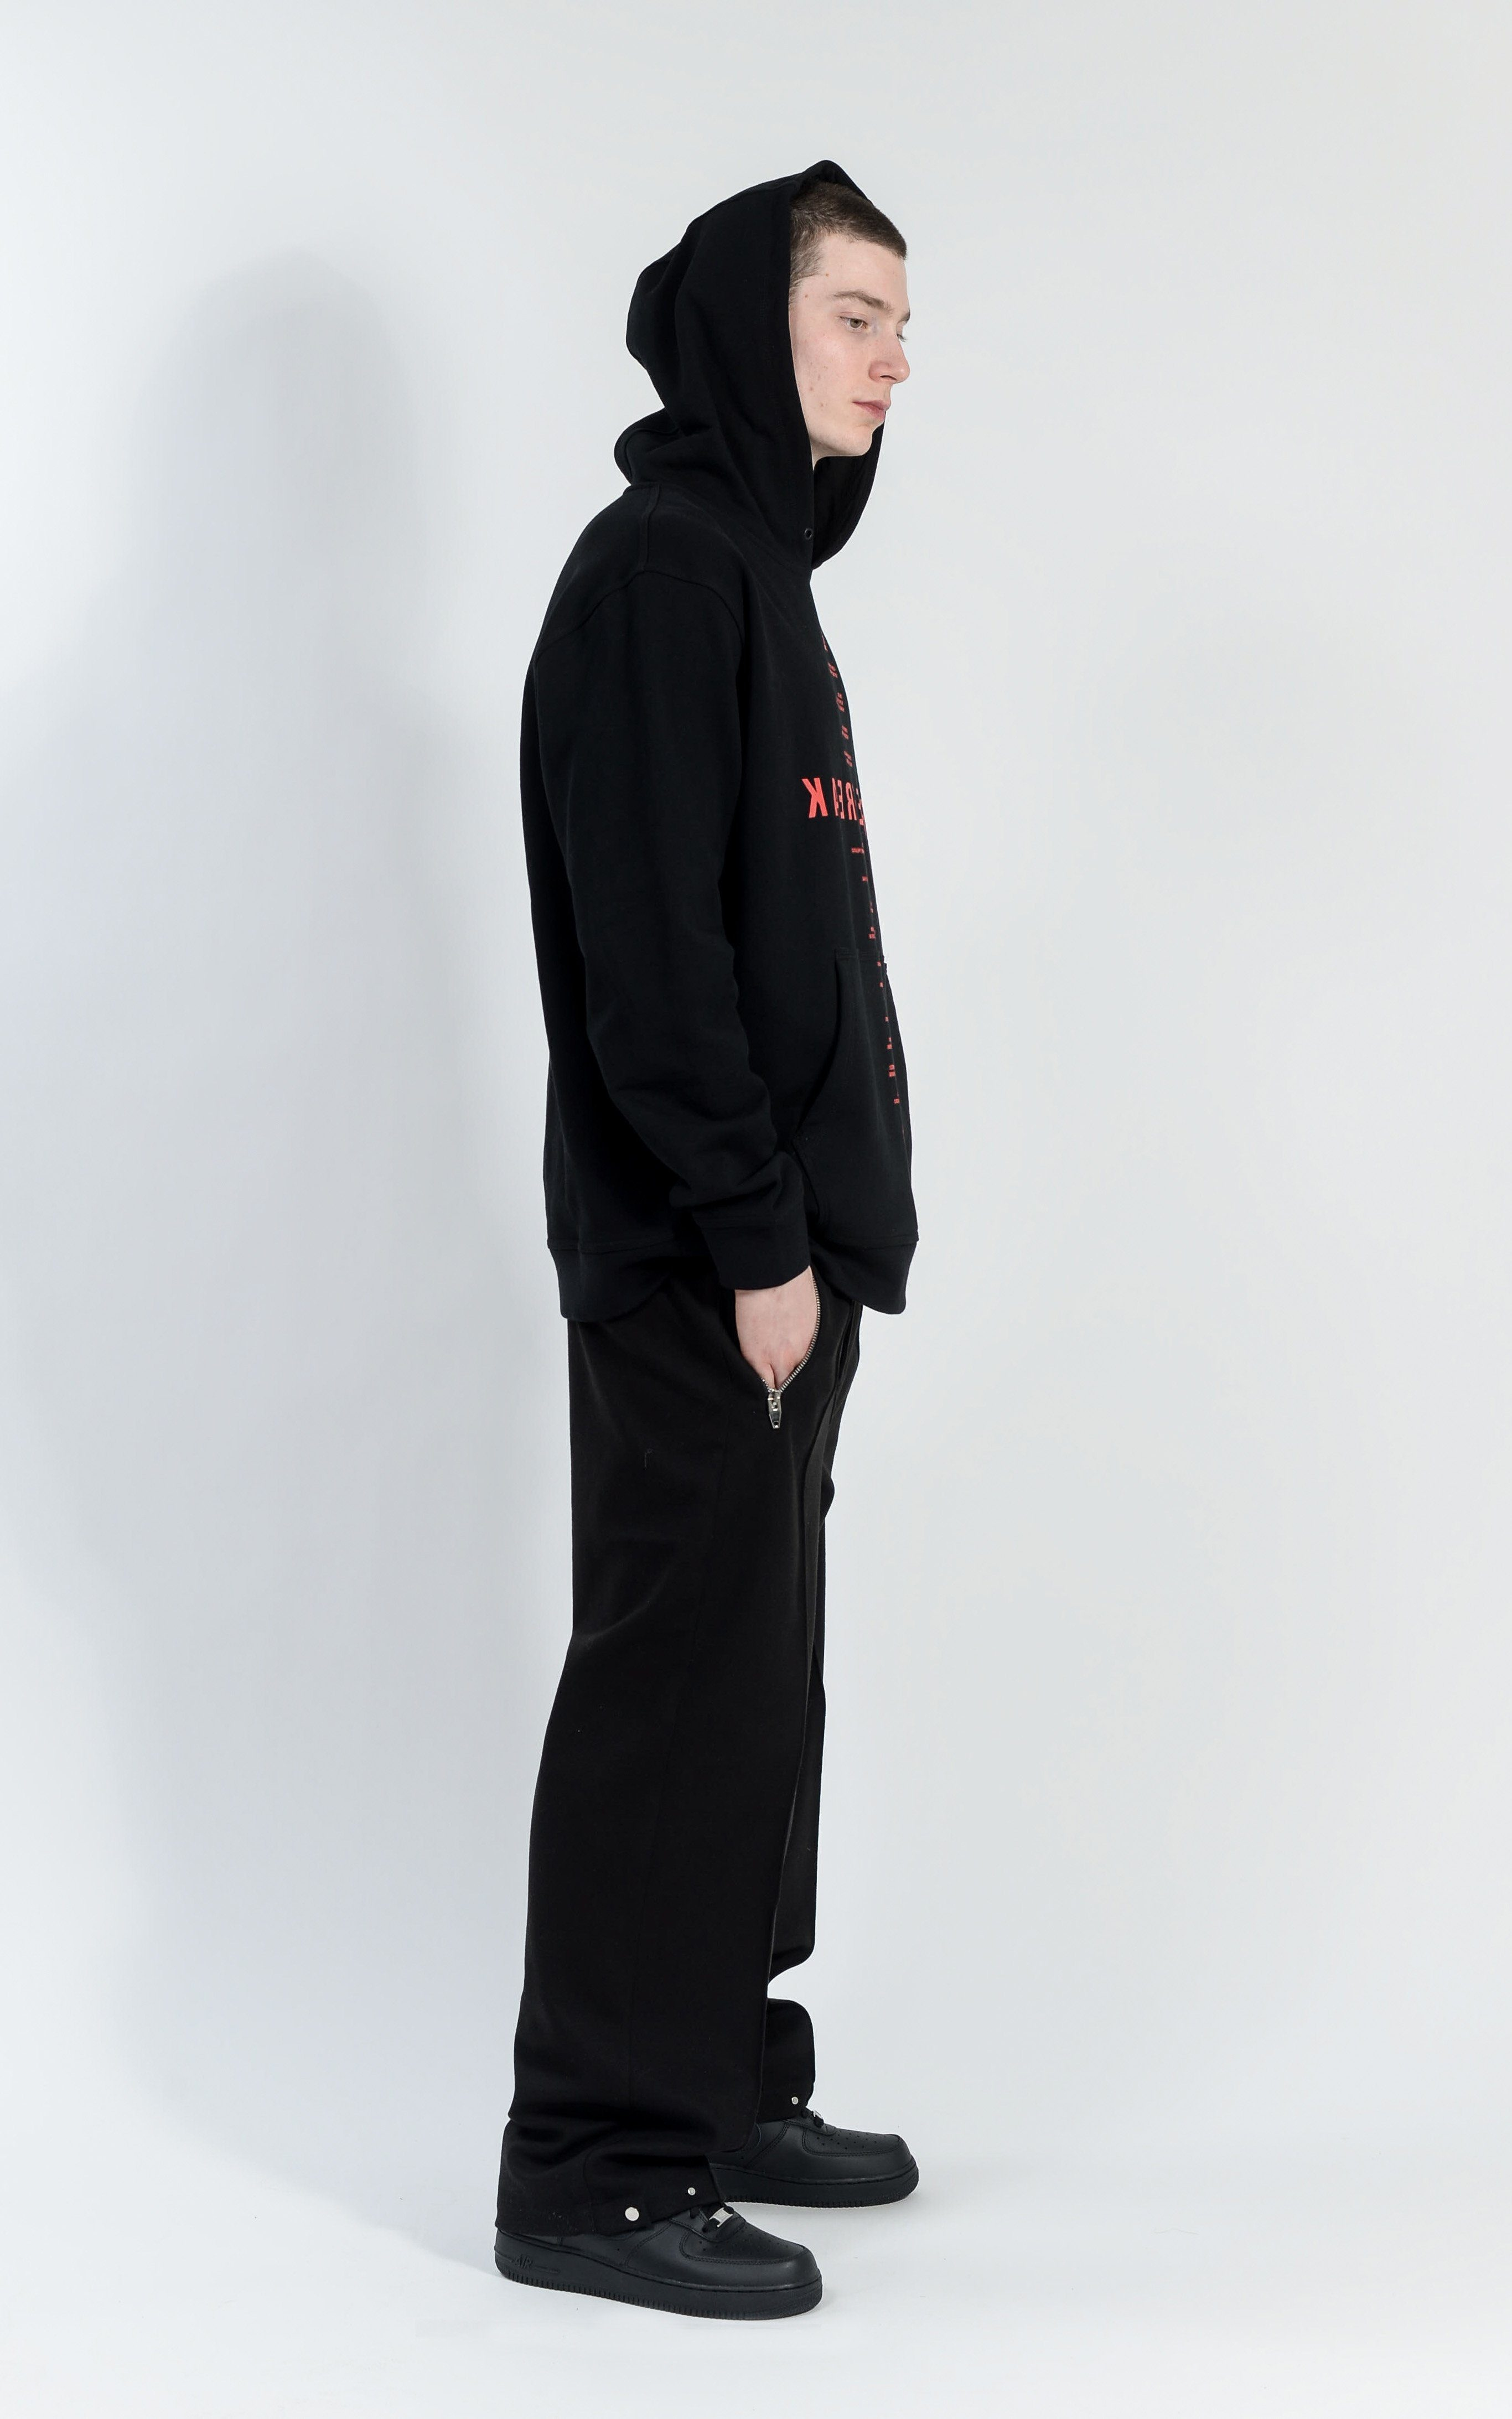 CON1715-01 FREE FREAK HOODIE - BLACK/ RED PRINT